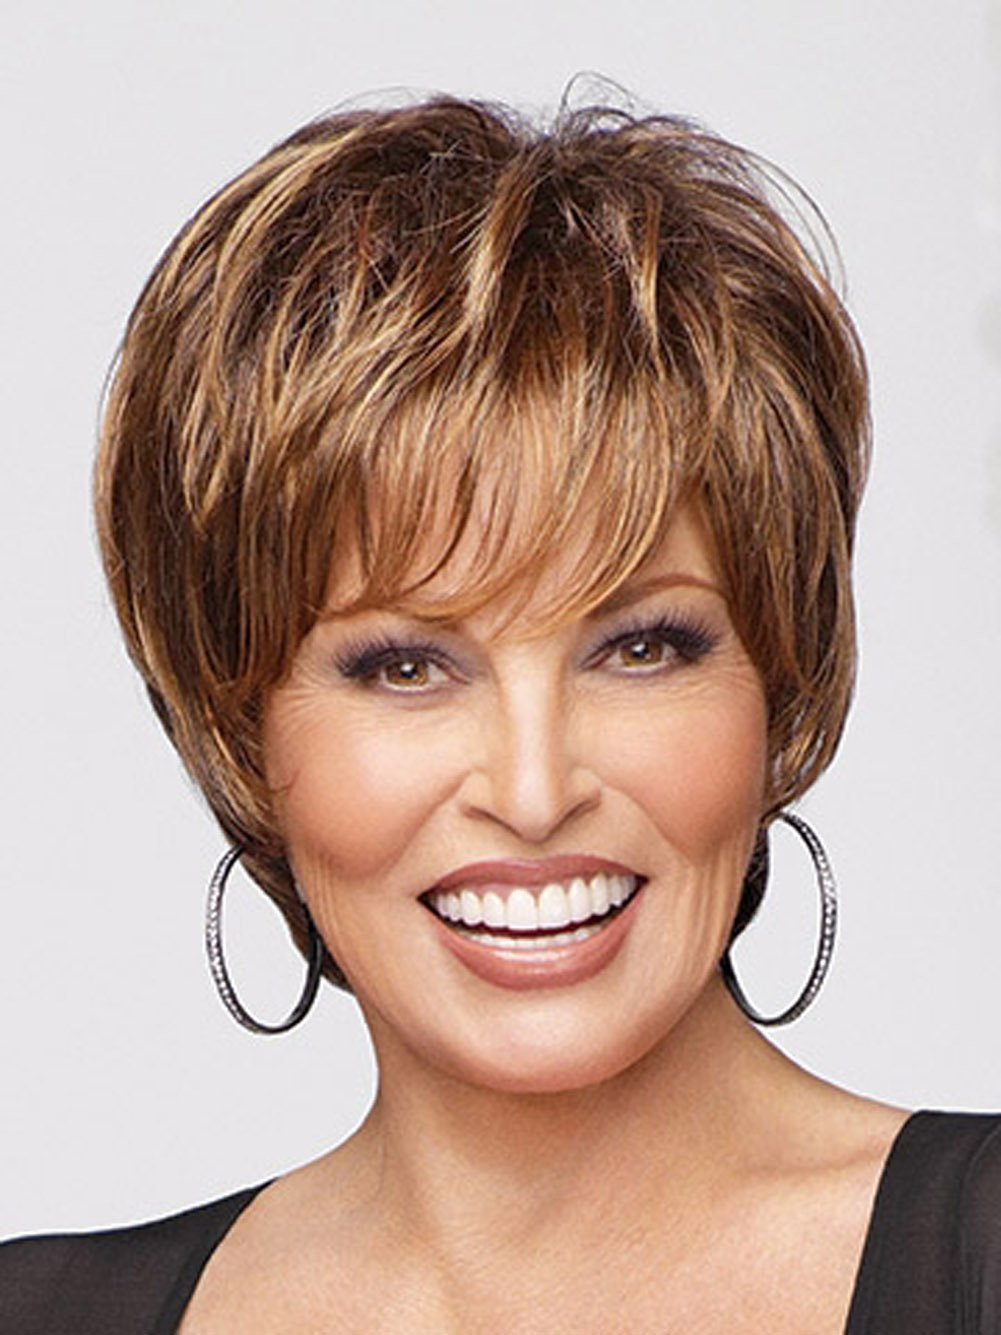 Cheap Raquel Welch Hair Extensions Find Raquel Welch Hair